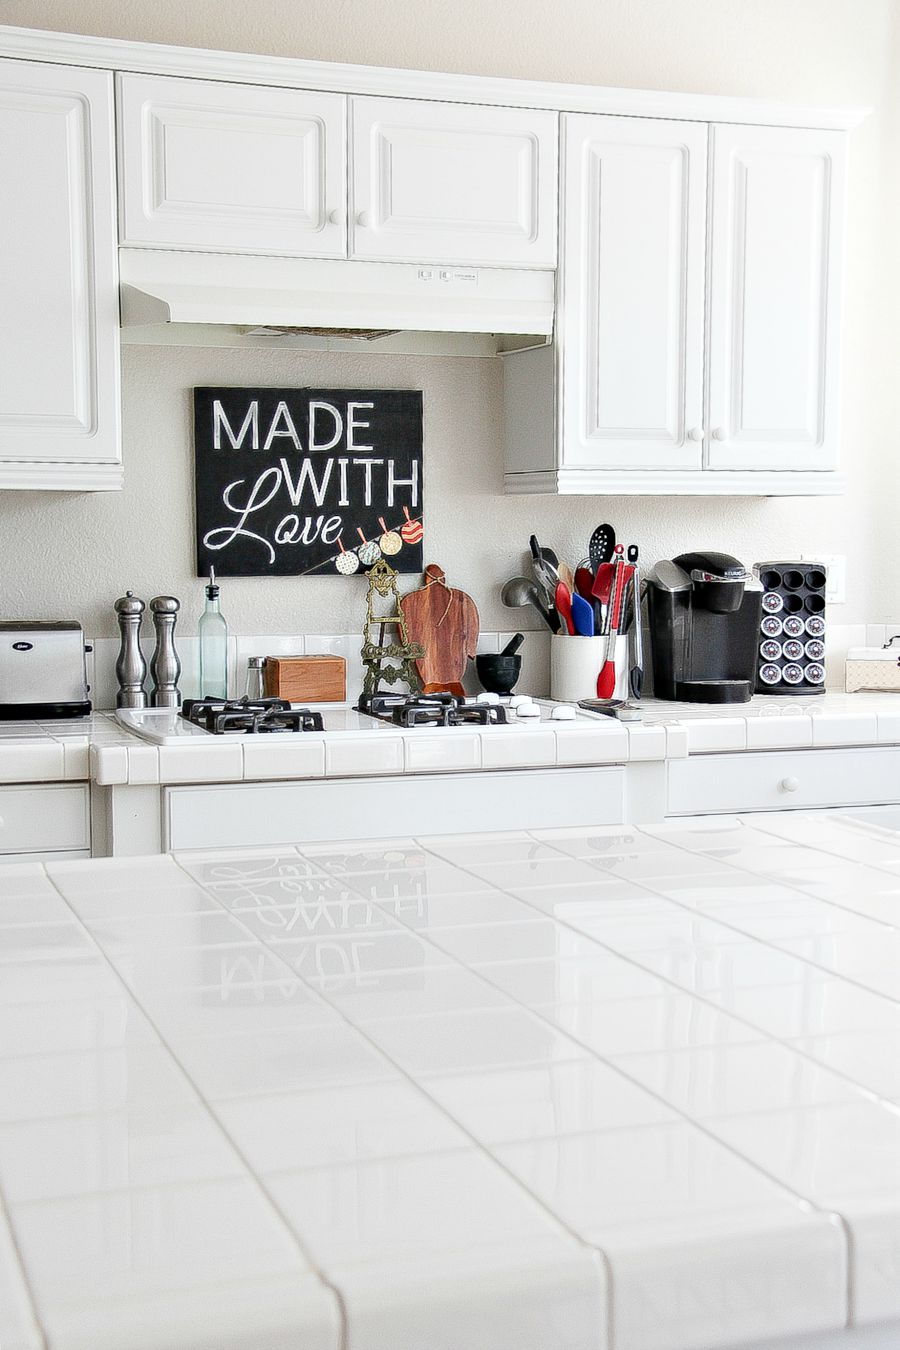 How To Clean Kitchen Counter Tile Grout Tonya Staab